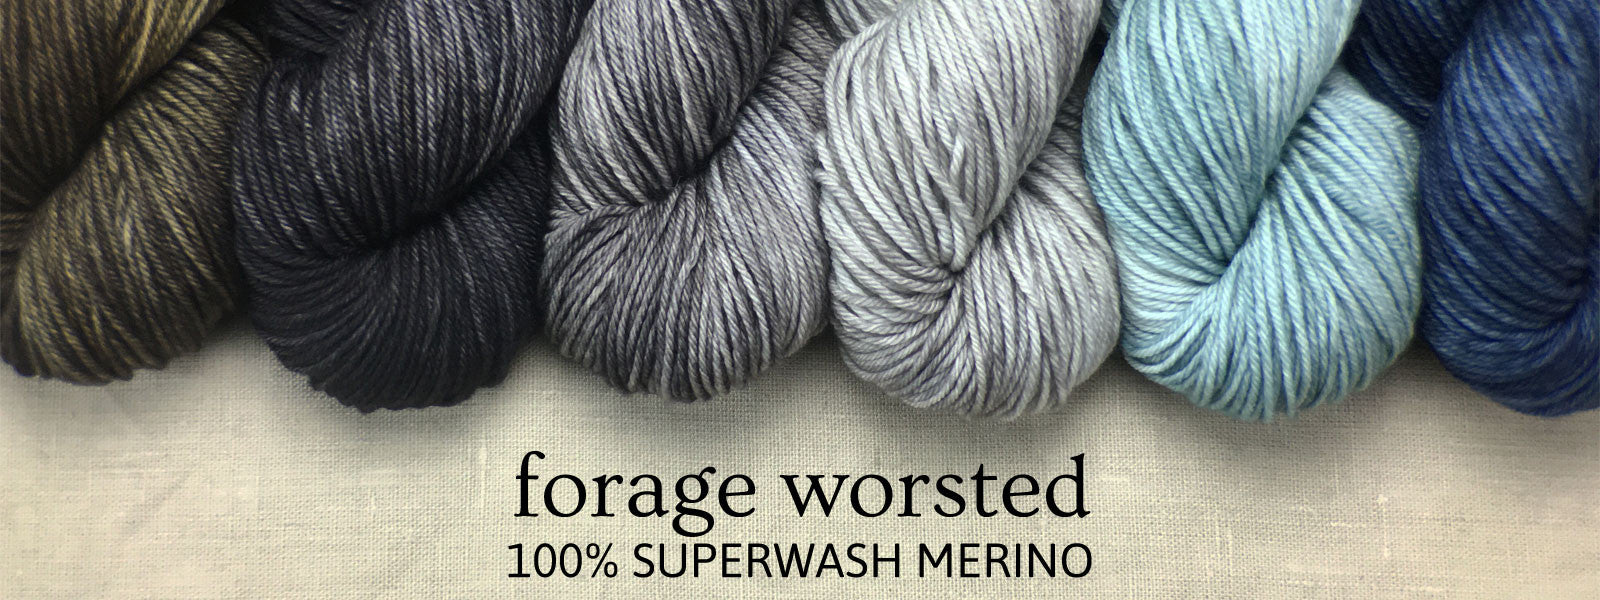 Forage Worsted Superwash Merino Hand Dyed Yarn